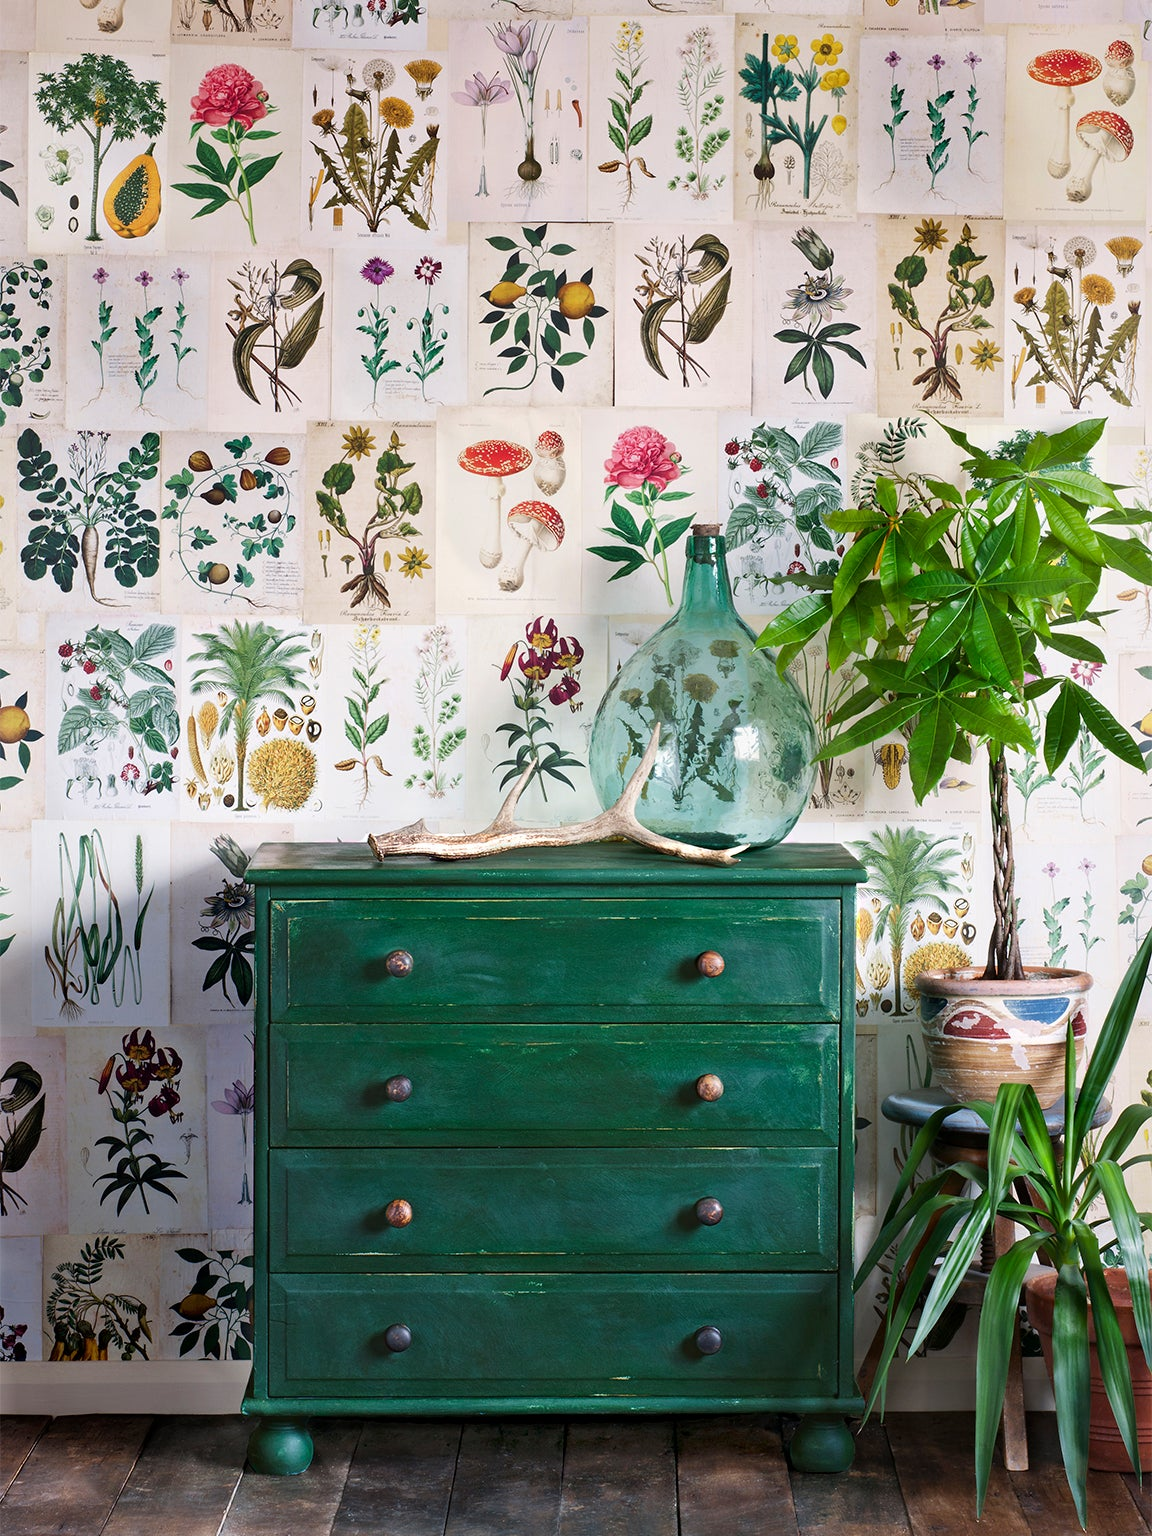 green dresser and plants in front of floral-print wallpaper